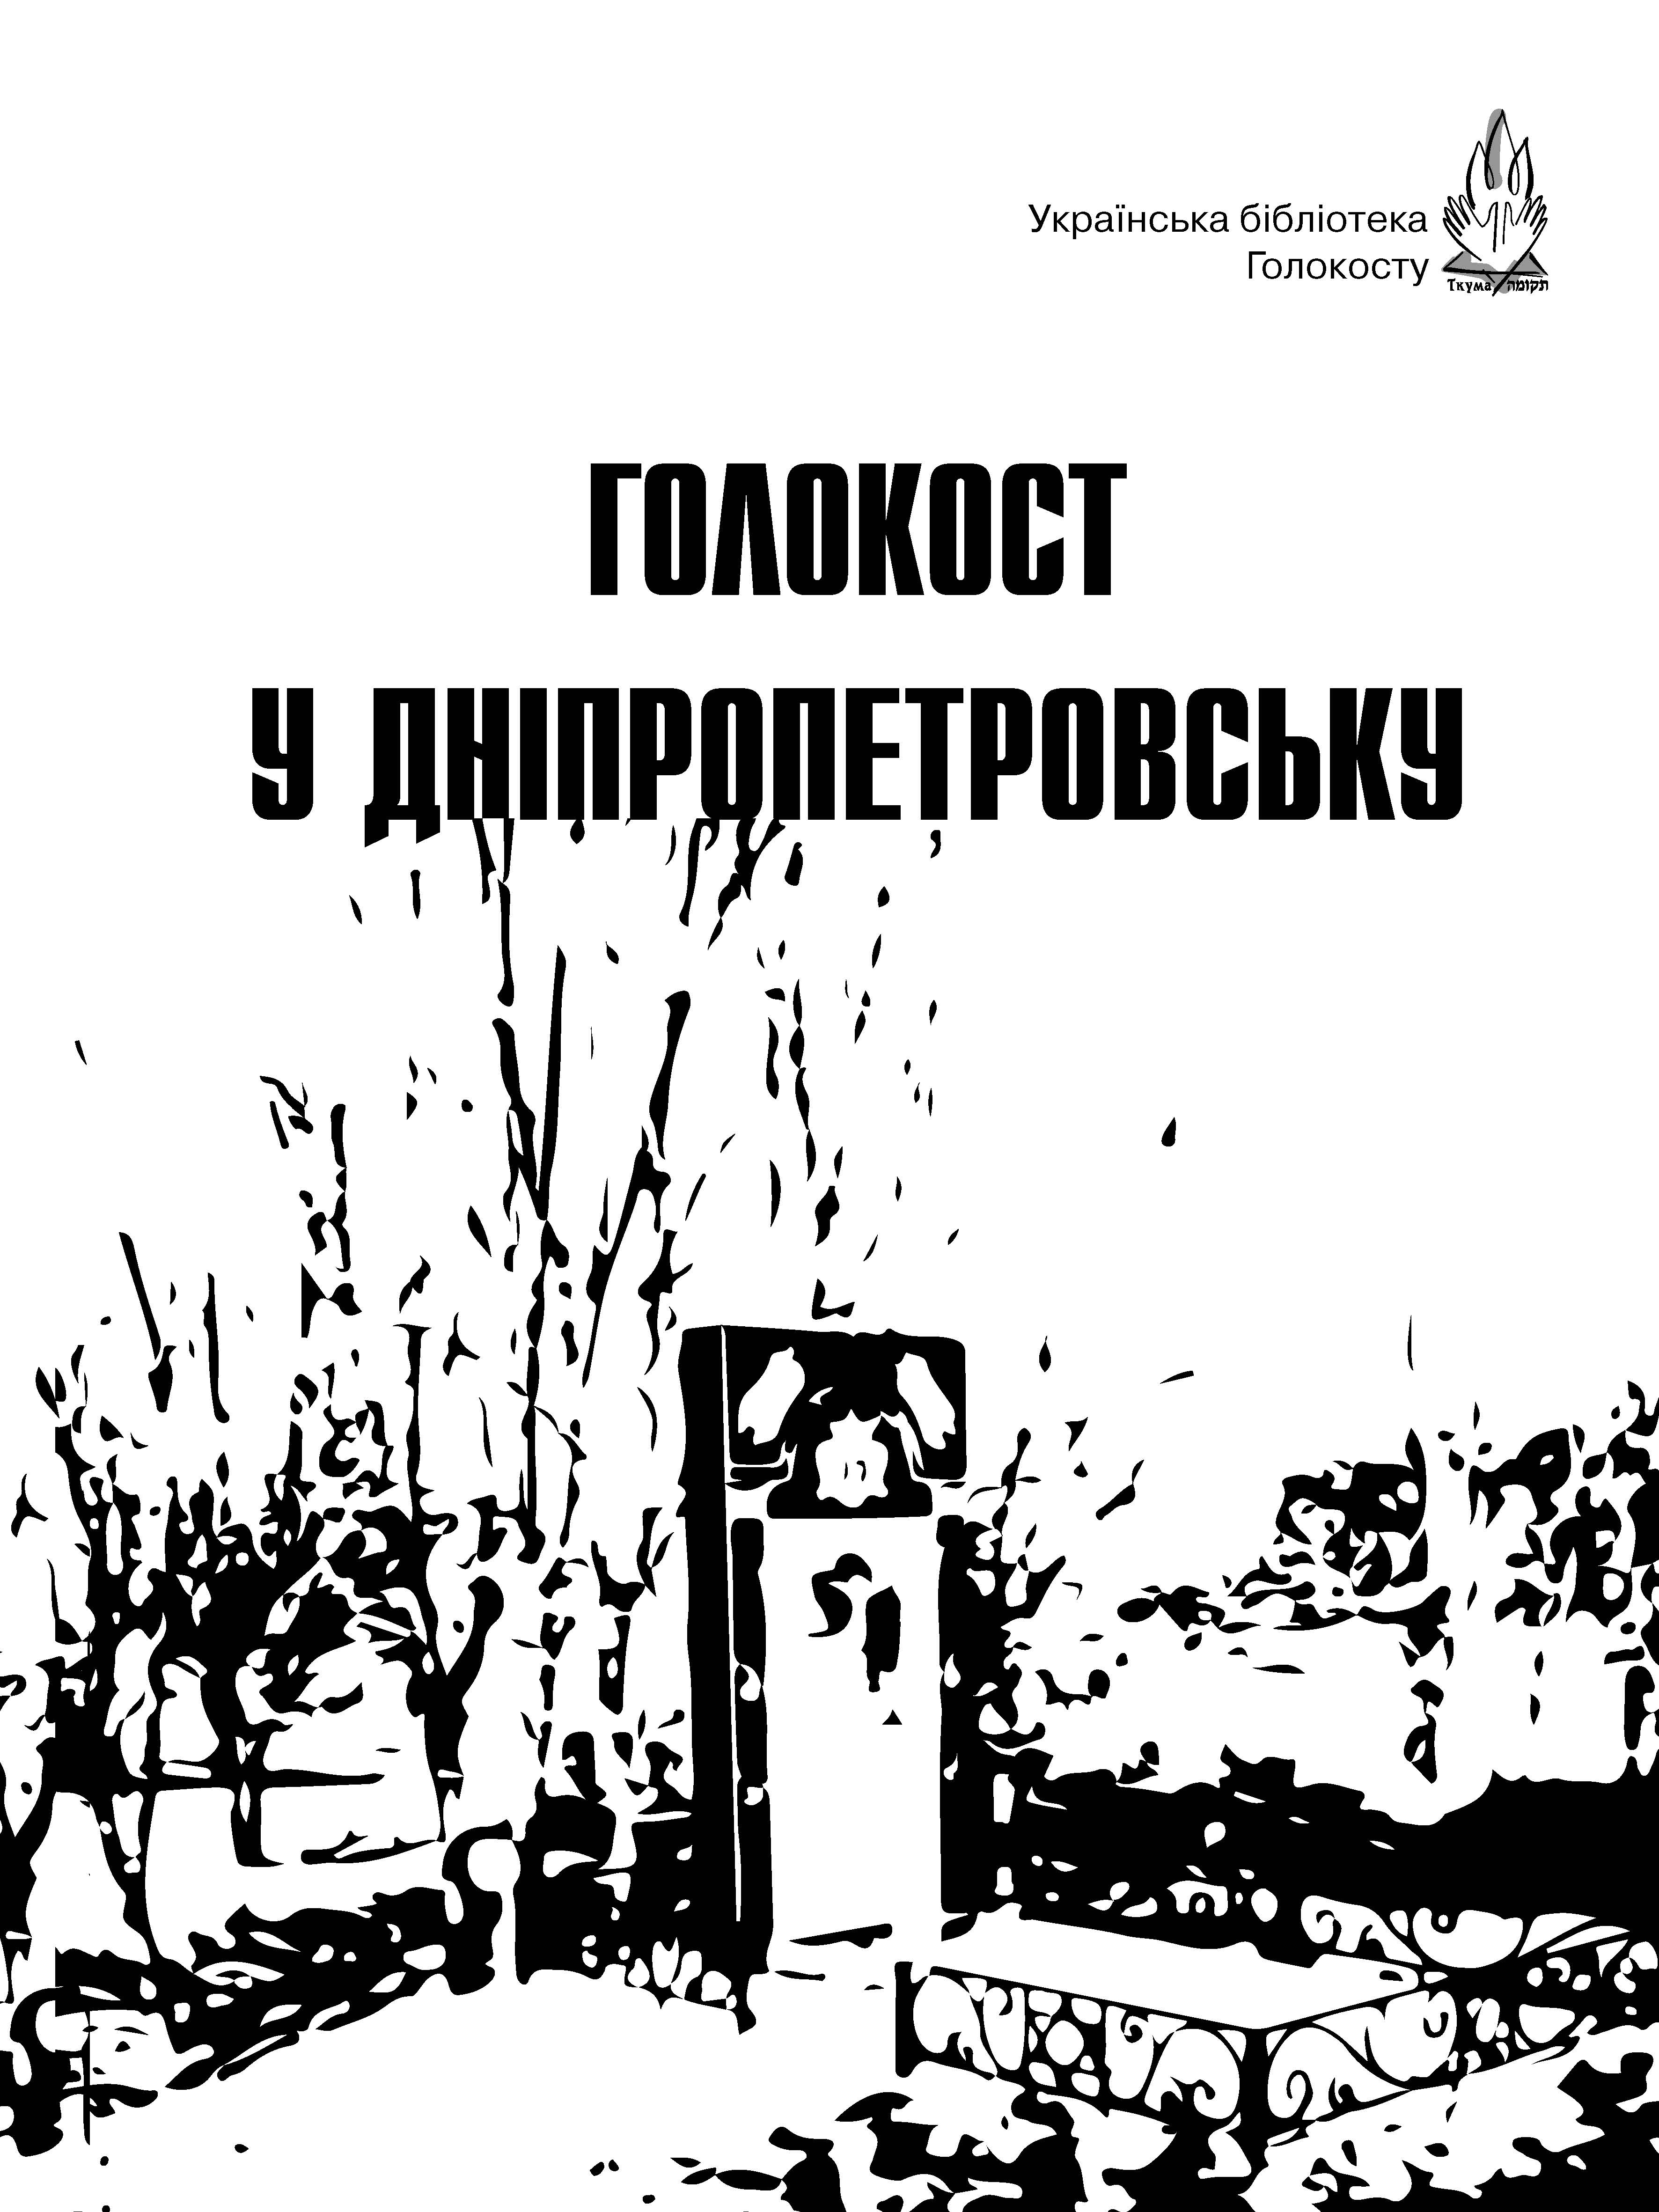 Holocaust in Dnipropetrovsk